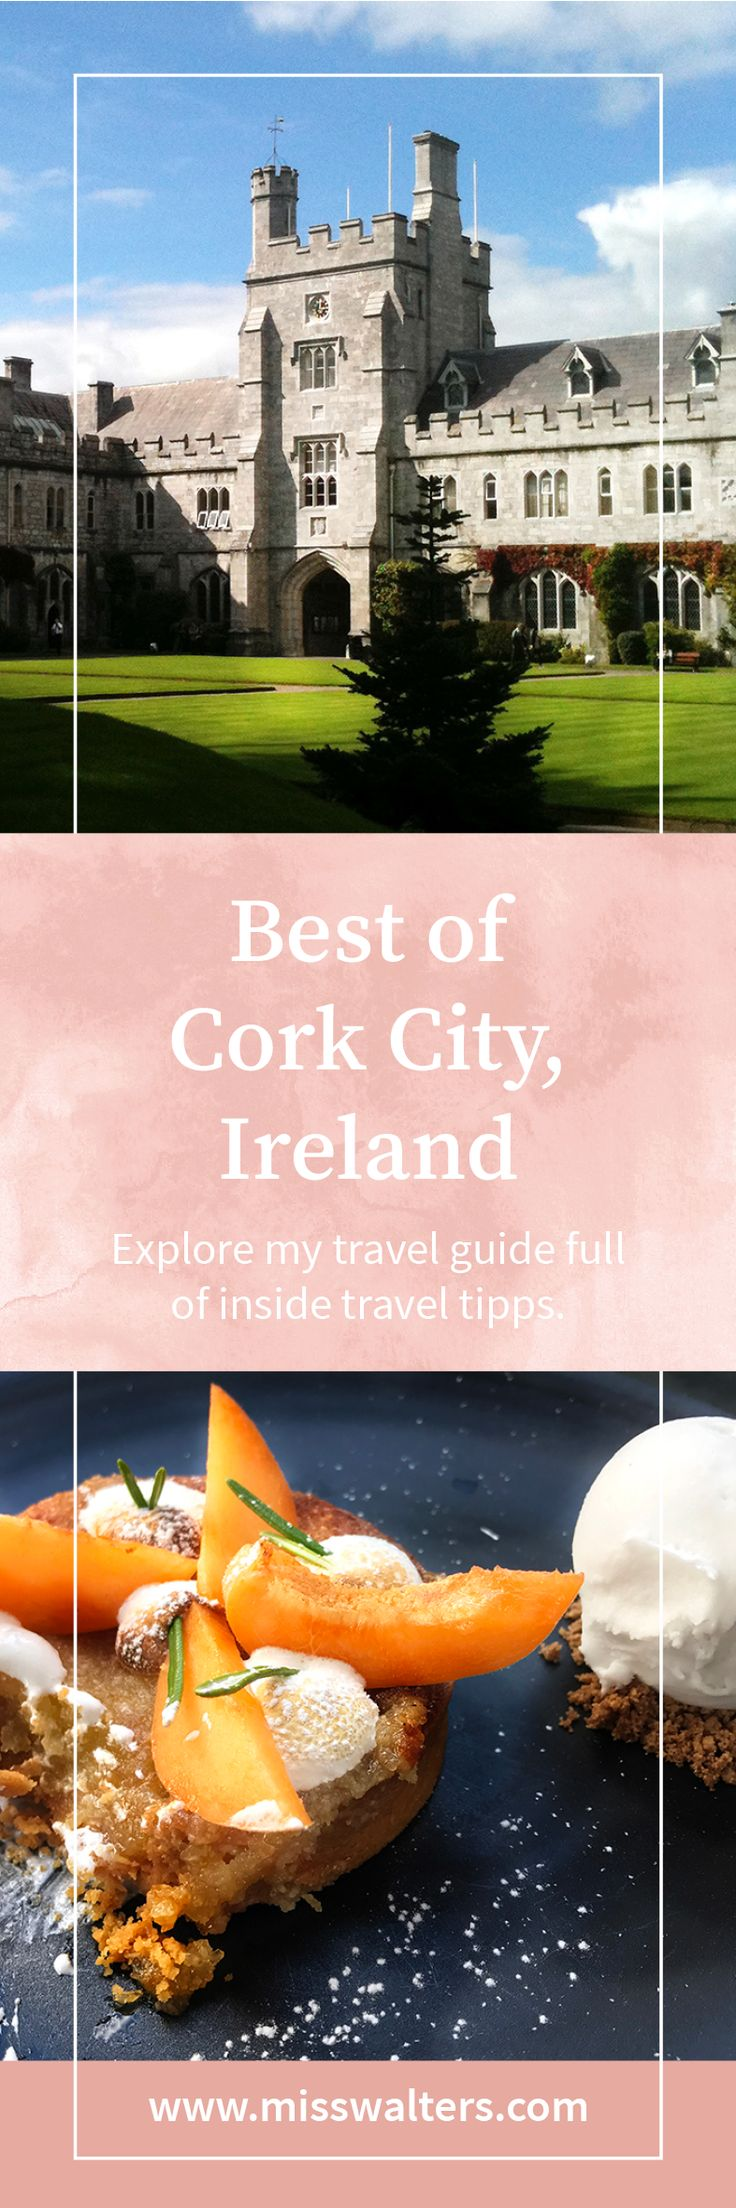 Explore my travel guide for Cork, Ireland. Full of inside travel tipps for mindful explorers.